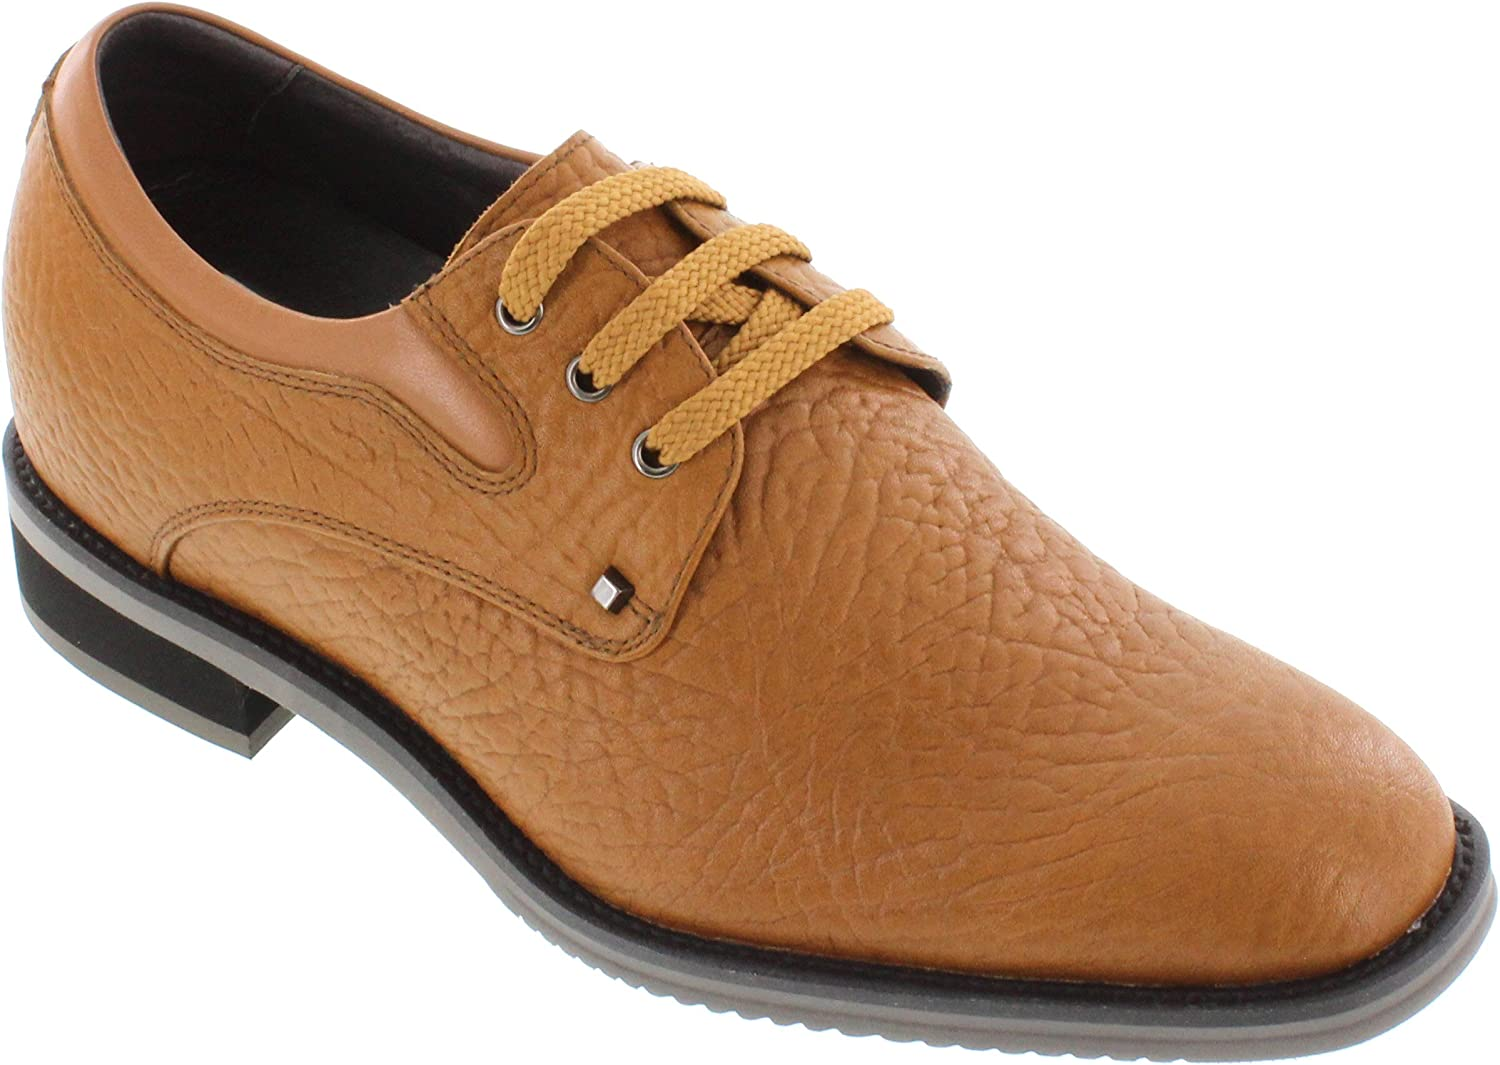 TOTO Men's Invisible Height Increasing Elevator Shoes - Brown Tan Leather Lace-up Lightweight Casual Oxfords - 2.8 Inches Taller - H335082